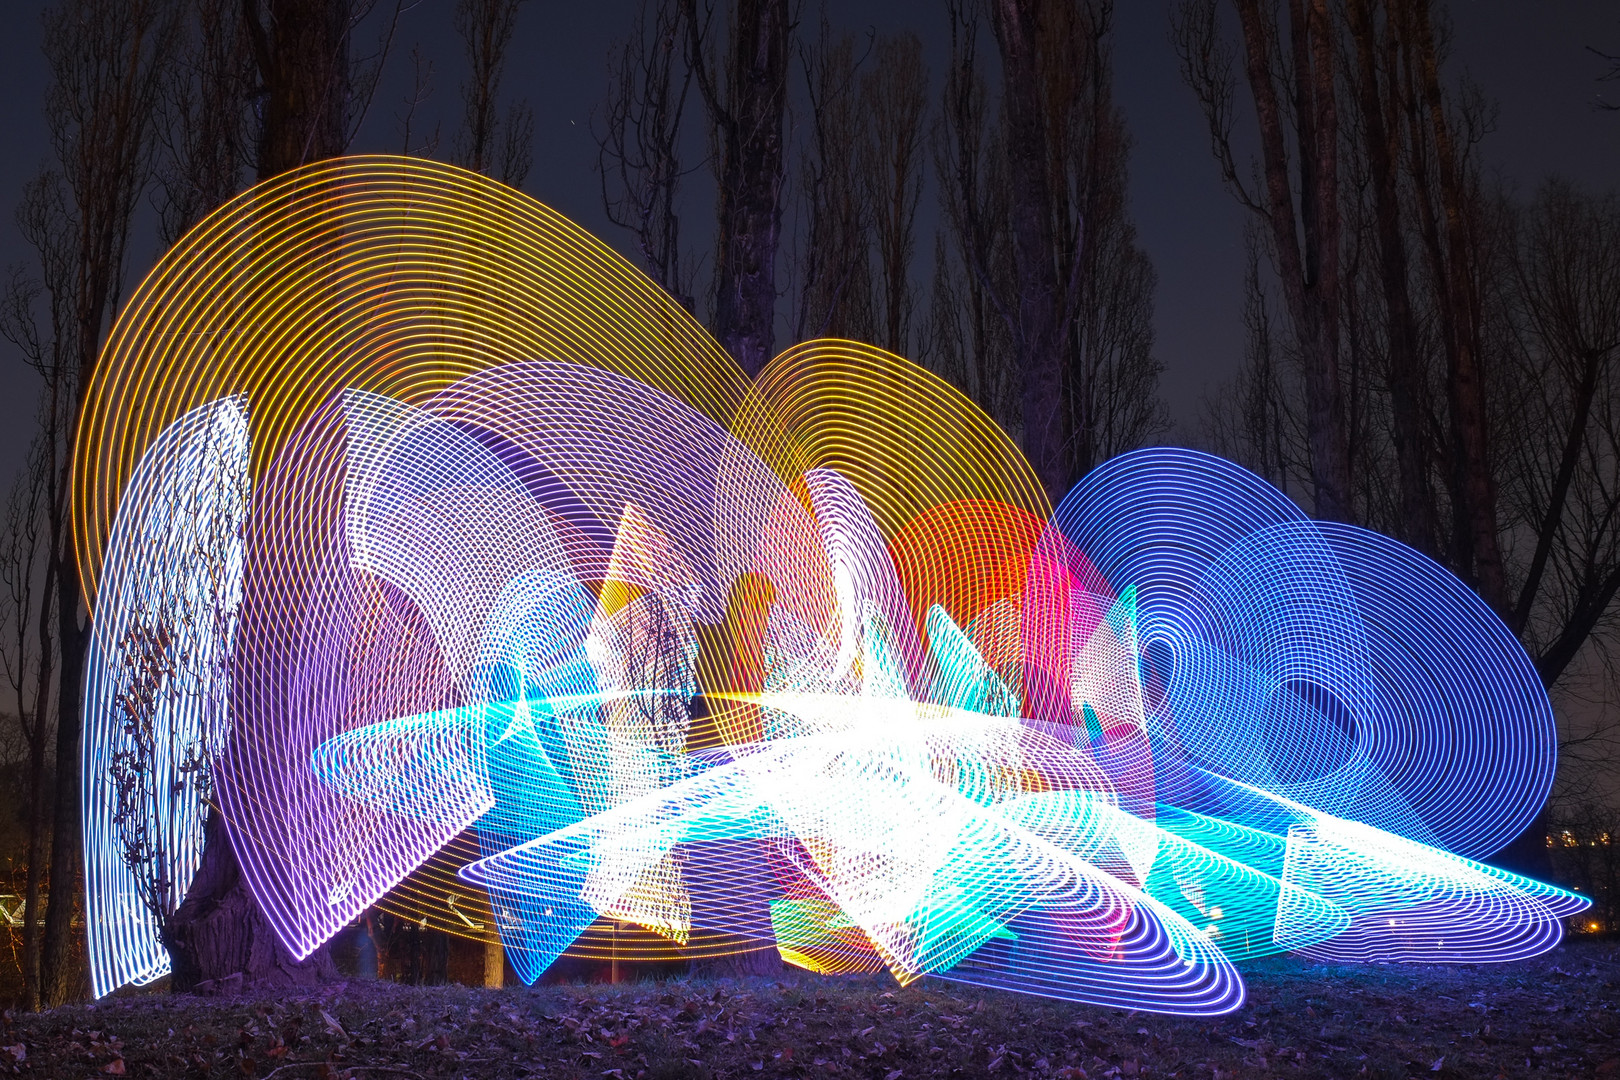 Lightpainting with trees